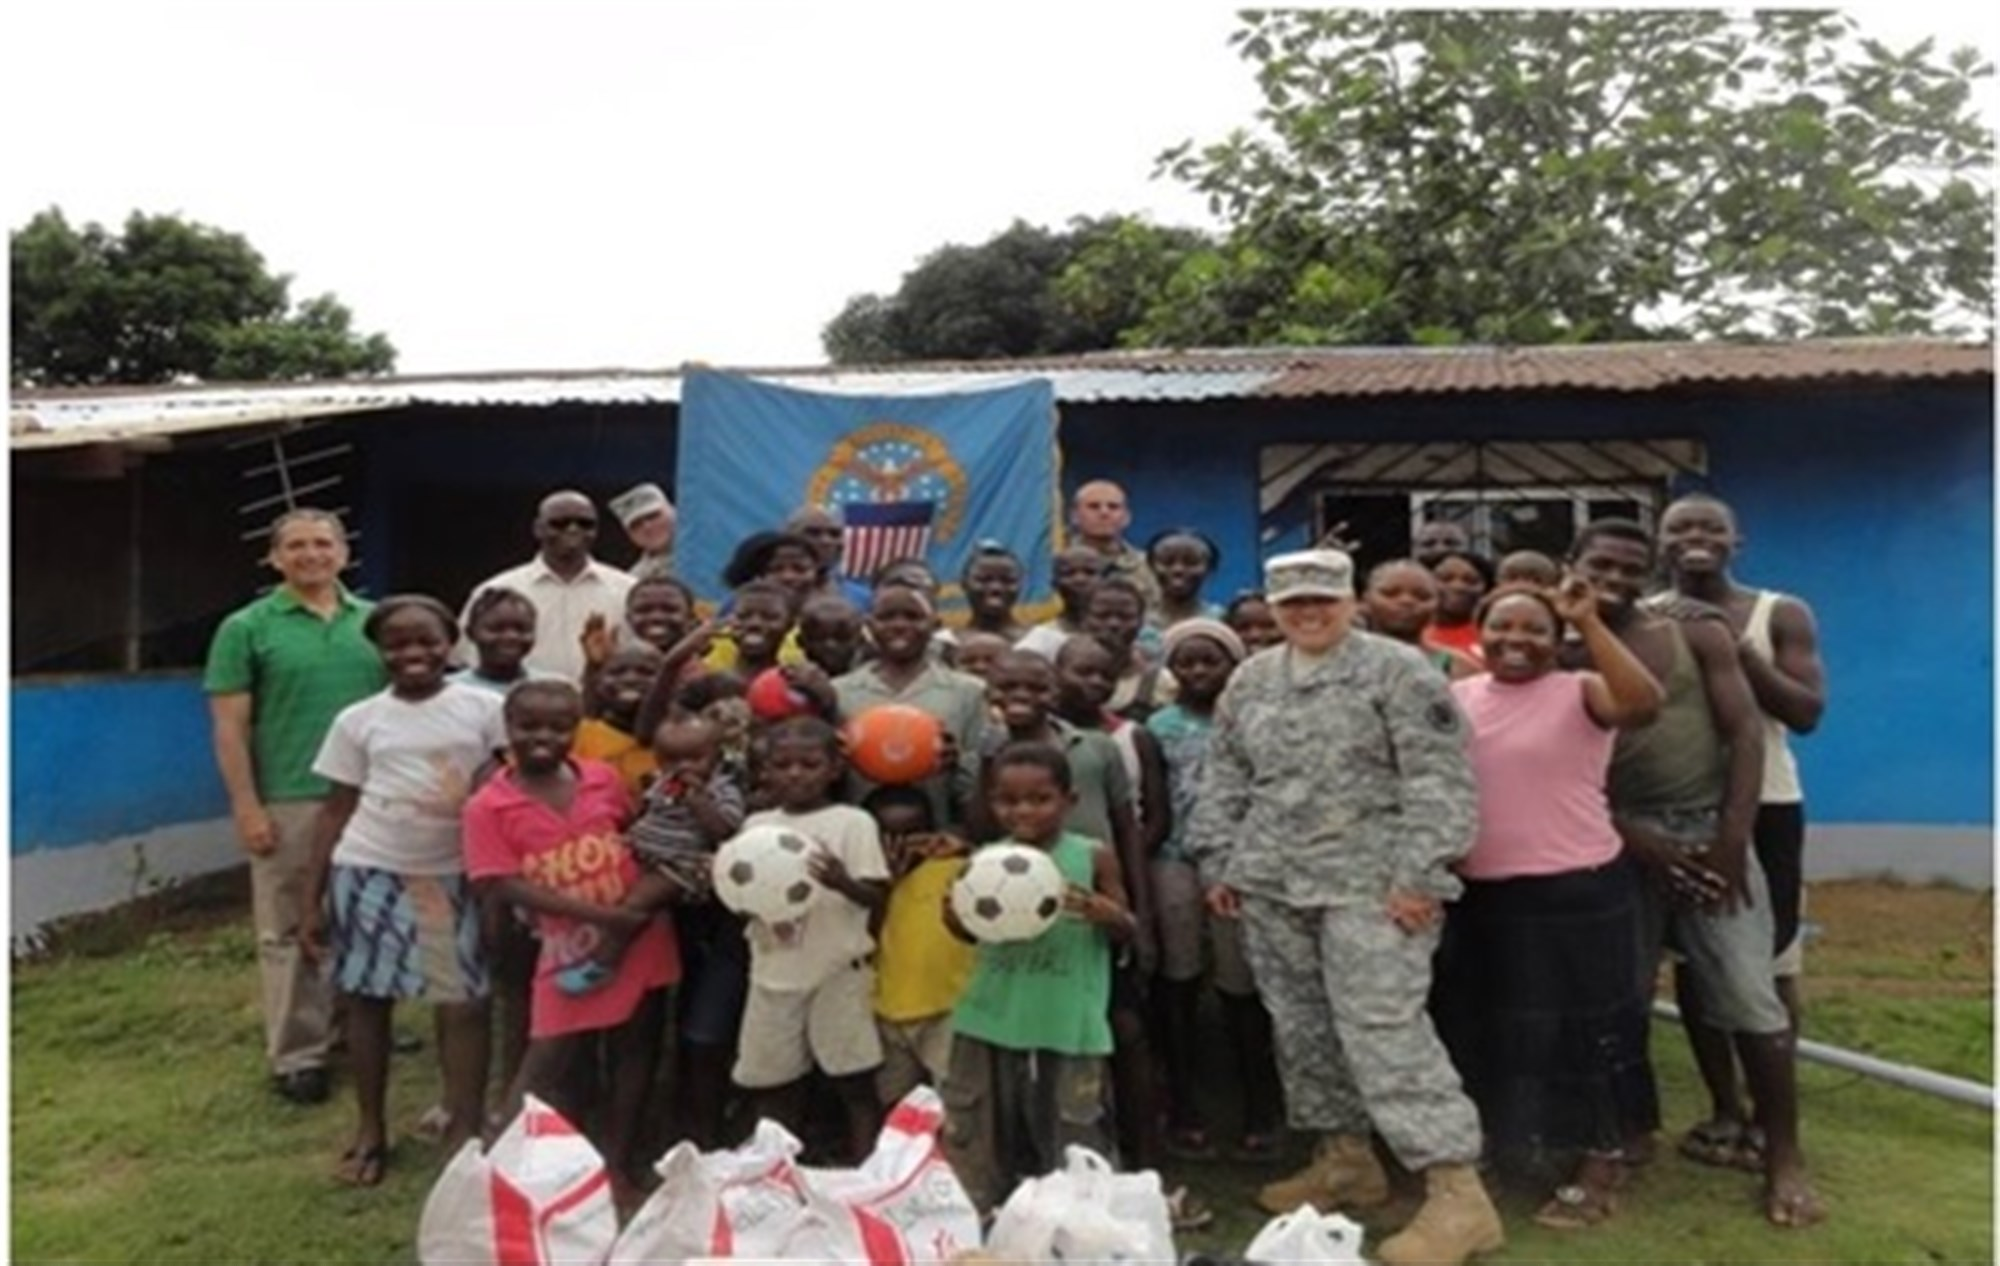 Defense Logistics Agency (DLA) Europe-Africa Commander, COL Deborah Keough, brings toys and supplies to orphanage in Liberia. Deliberate planning and actions across the entire logistics enterprise united the efforts of a multi-disciplined, interagency team formed across nations, governments and non-government organizations (NGOs) which directly led to success in OPERATION United Assistance. U.S. AFRICOM photo/released)